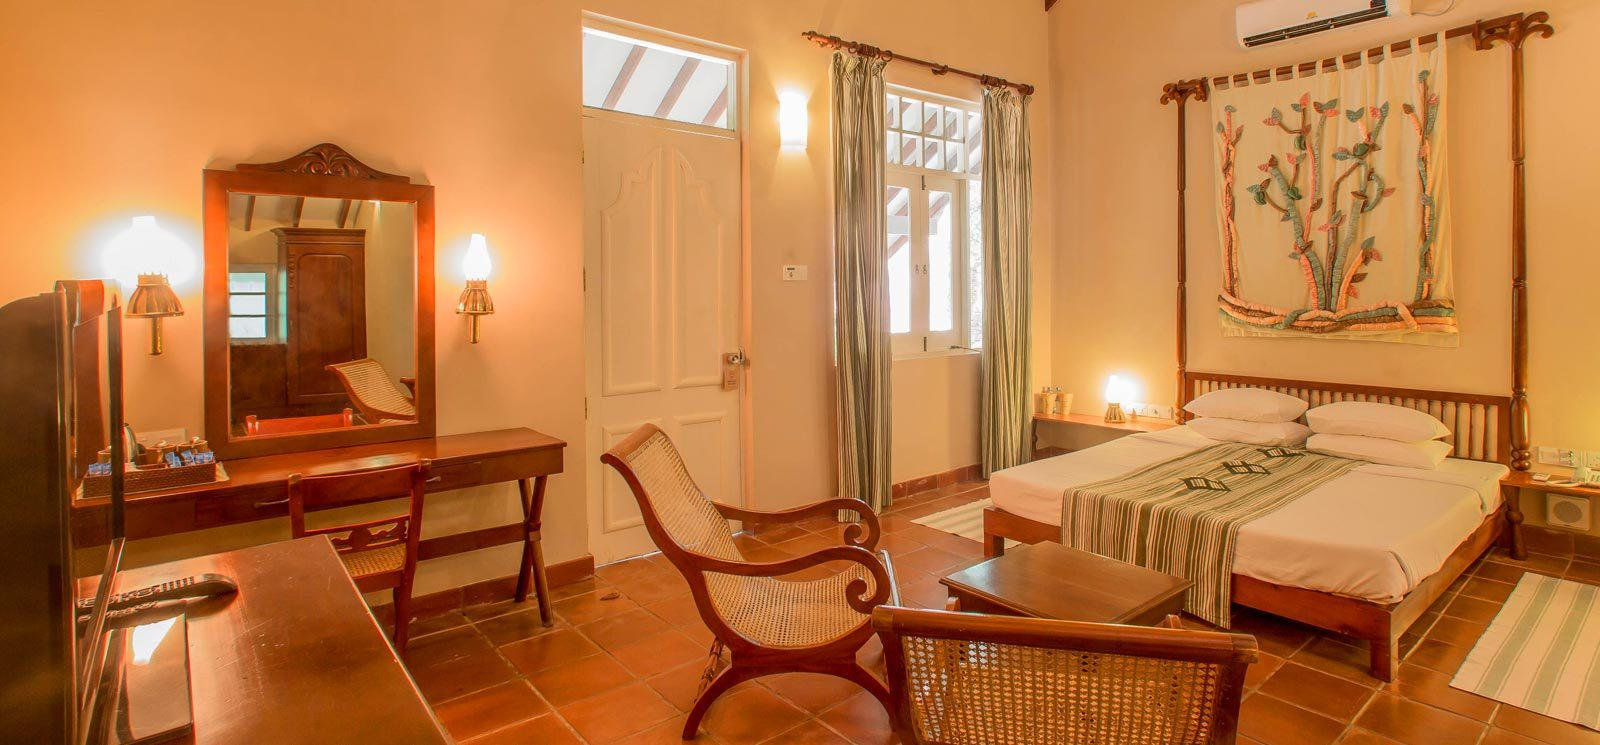 Cottage type rooms that blends with nature at Sigiriya Village Hotel